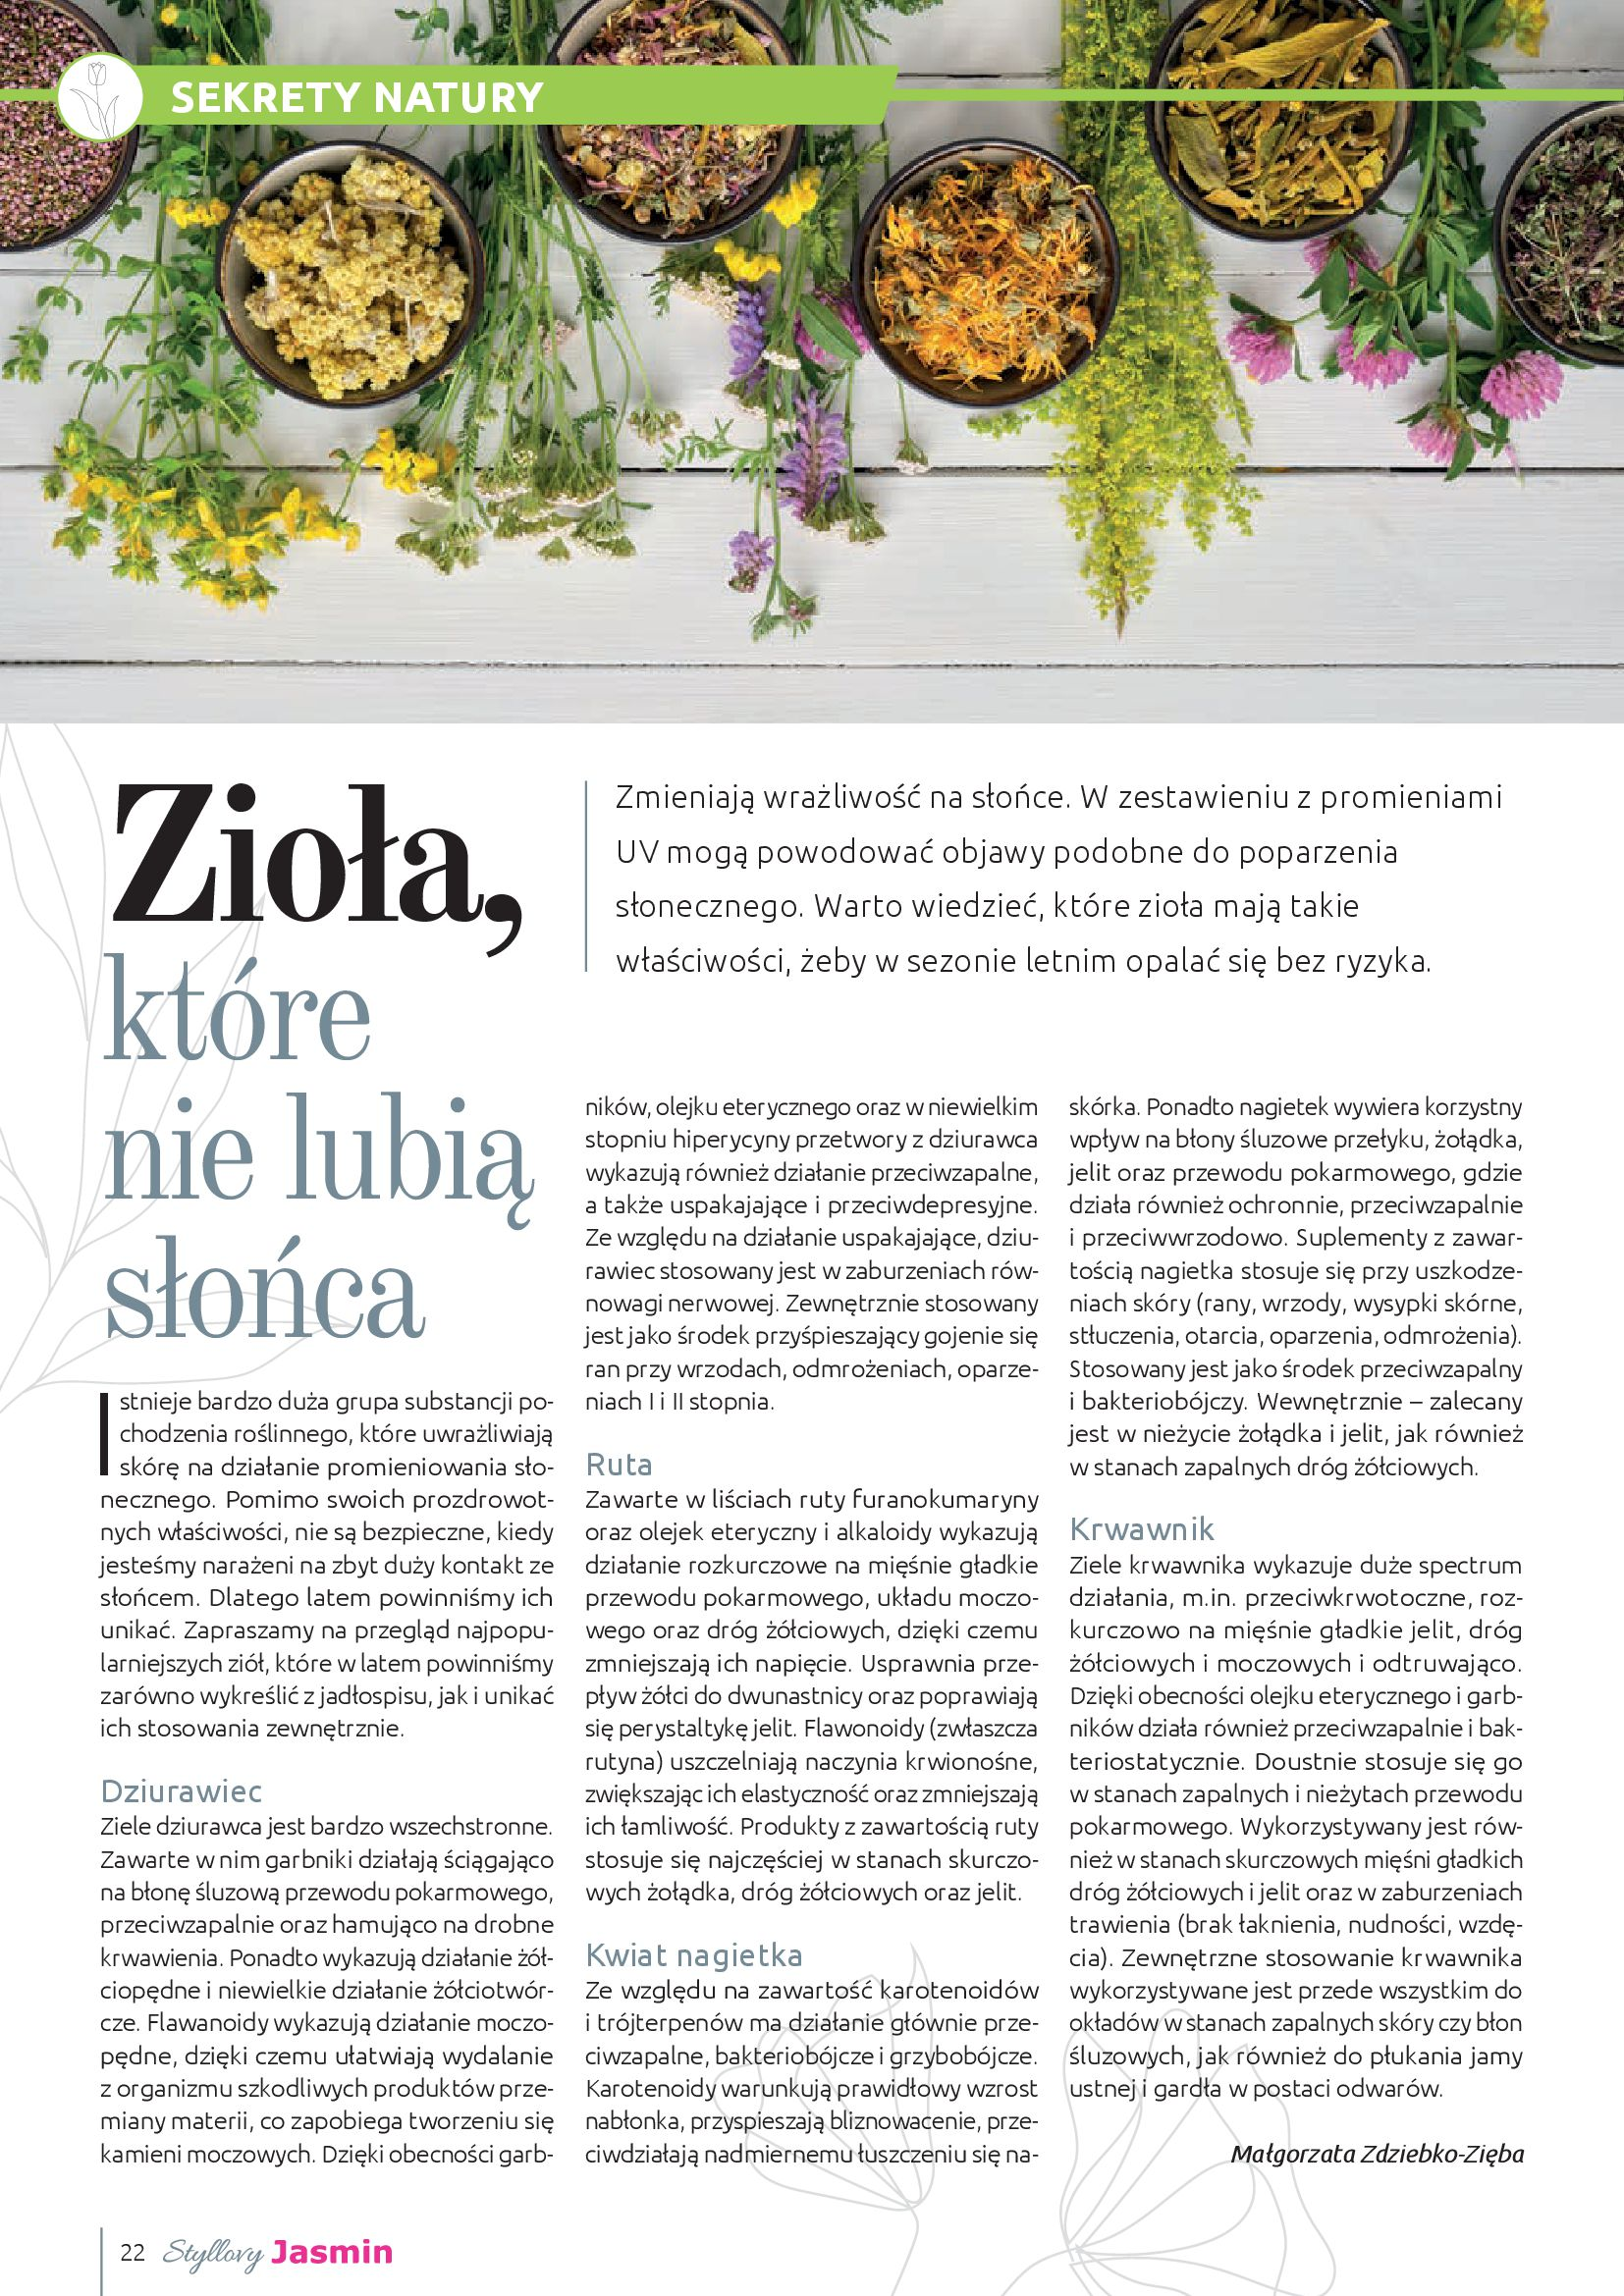 Gazetka Drogerie Jasmin: Gazetka Drogerie Jasmin 2021-08-24 page-22